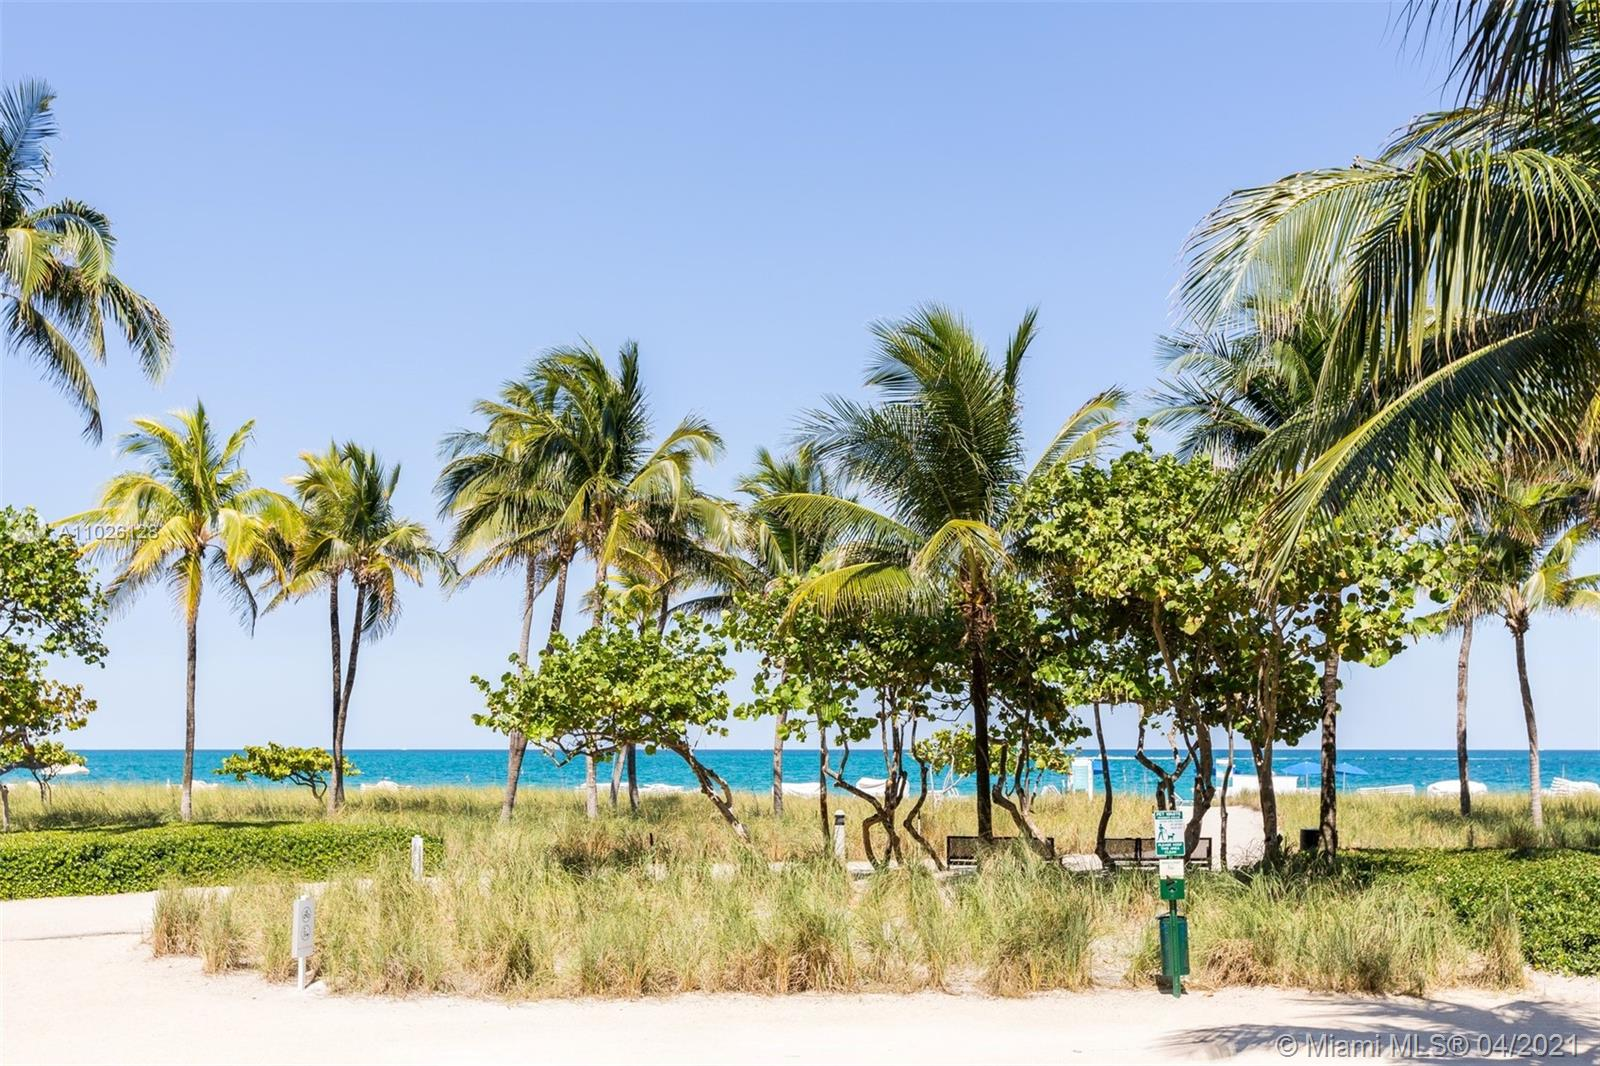 Photo of 9801 Collins Ave #20V, Bal Harbour, Florida, 33154 - Balmoral Bar and salon Party available for events